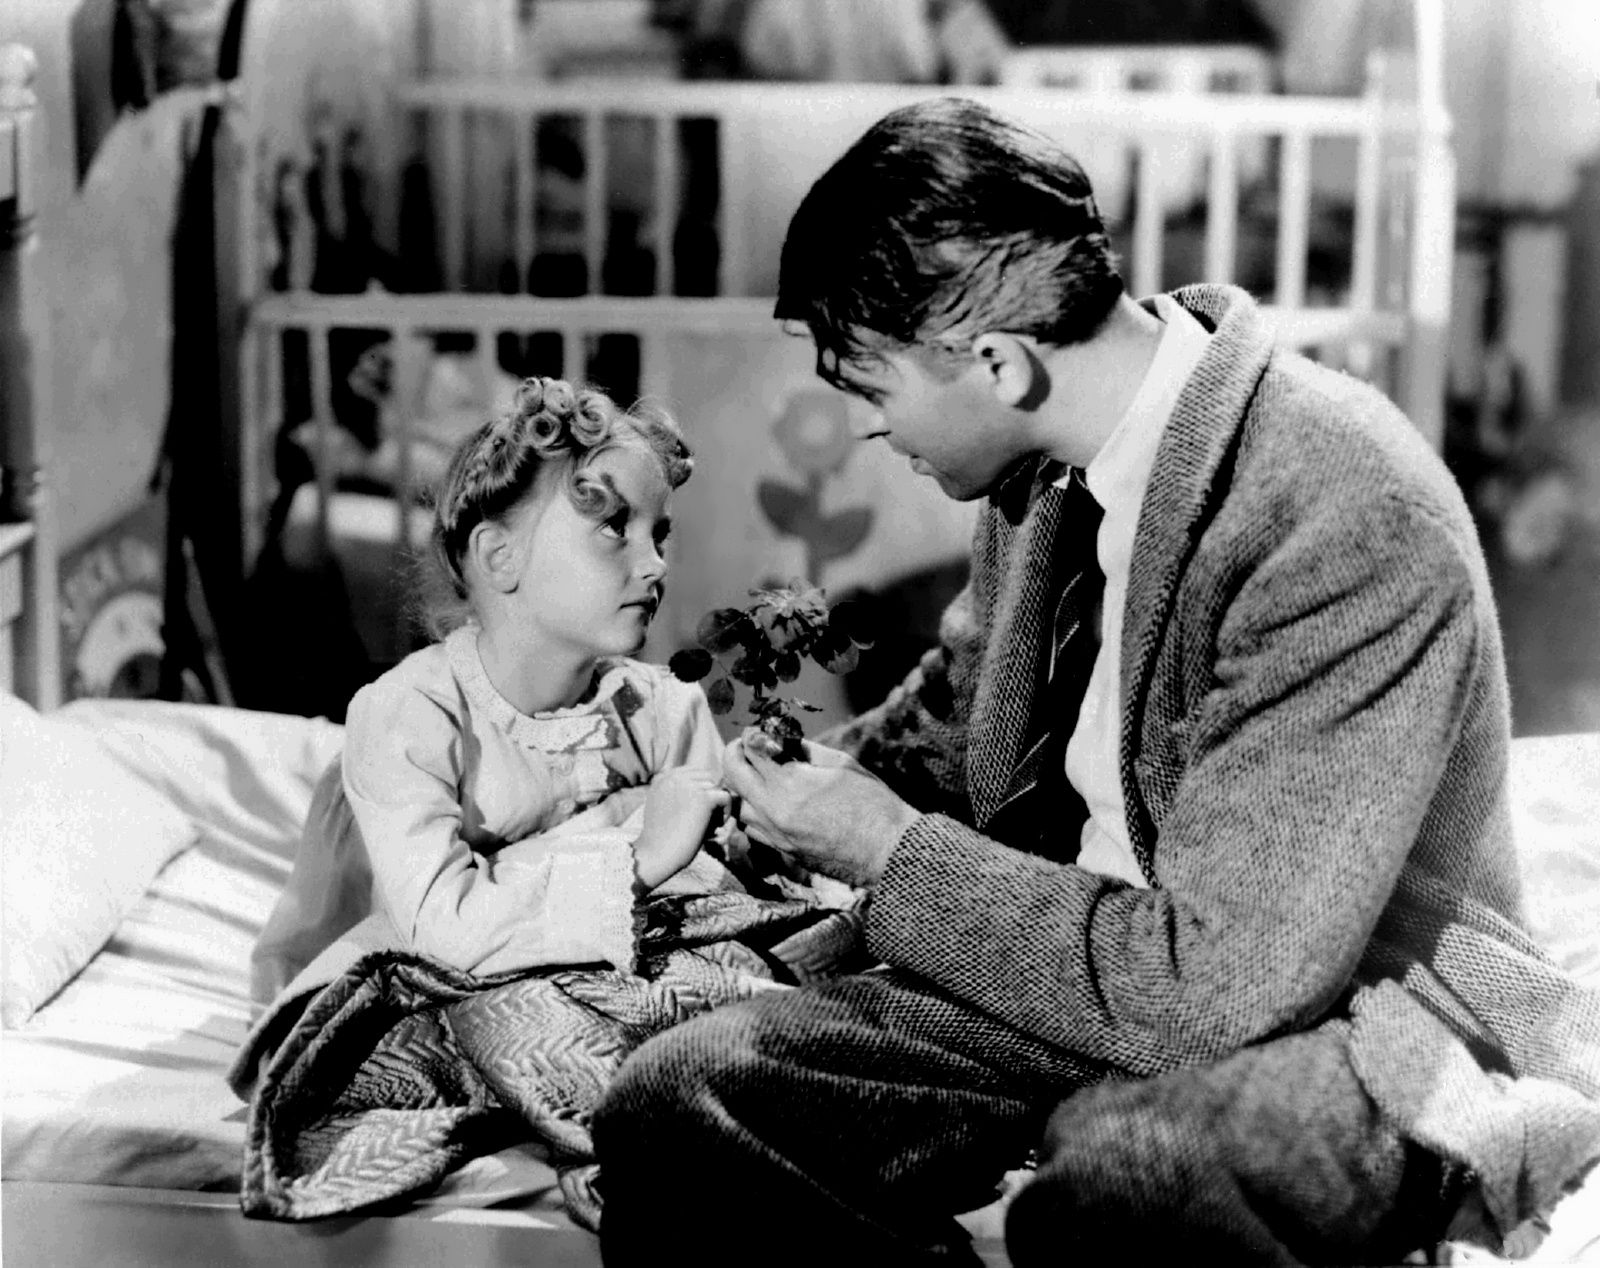 An image from It's a Wonderful Life